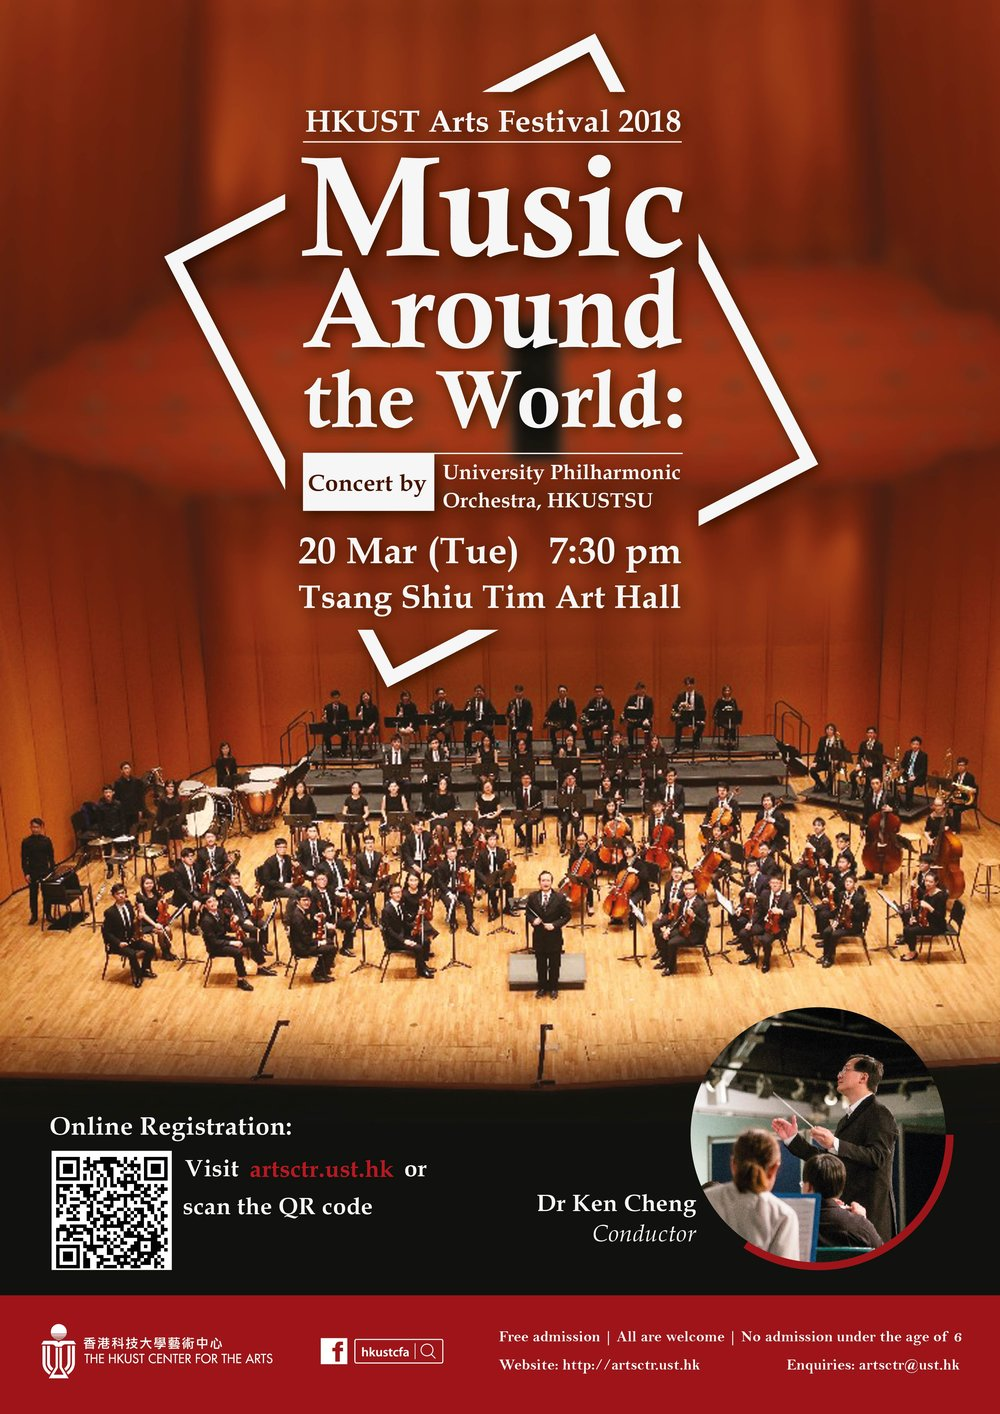 Music Around the World: Concert by University Philharmonic Orchestra, HKUSTSU  Mar 20, 2018